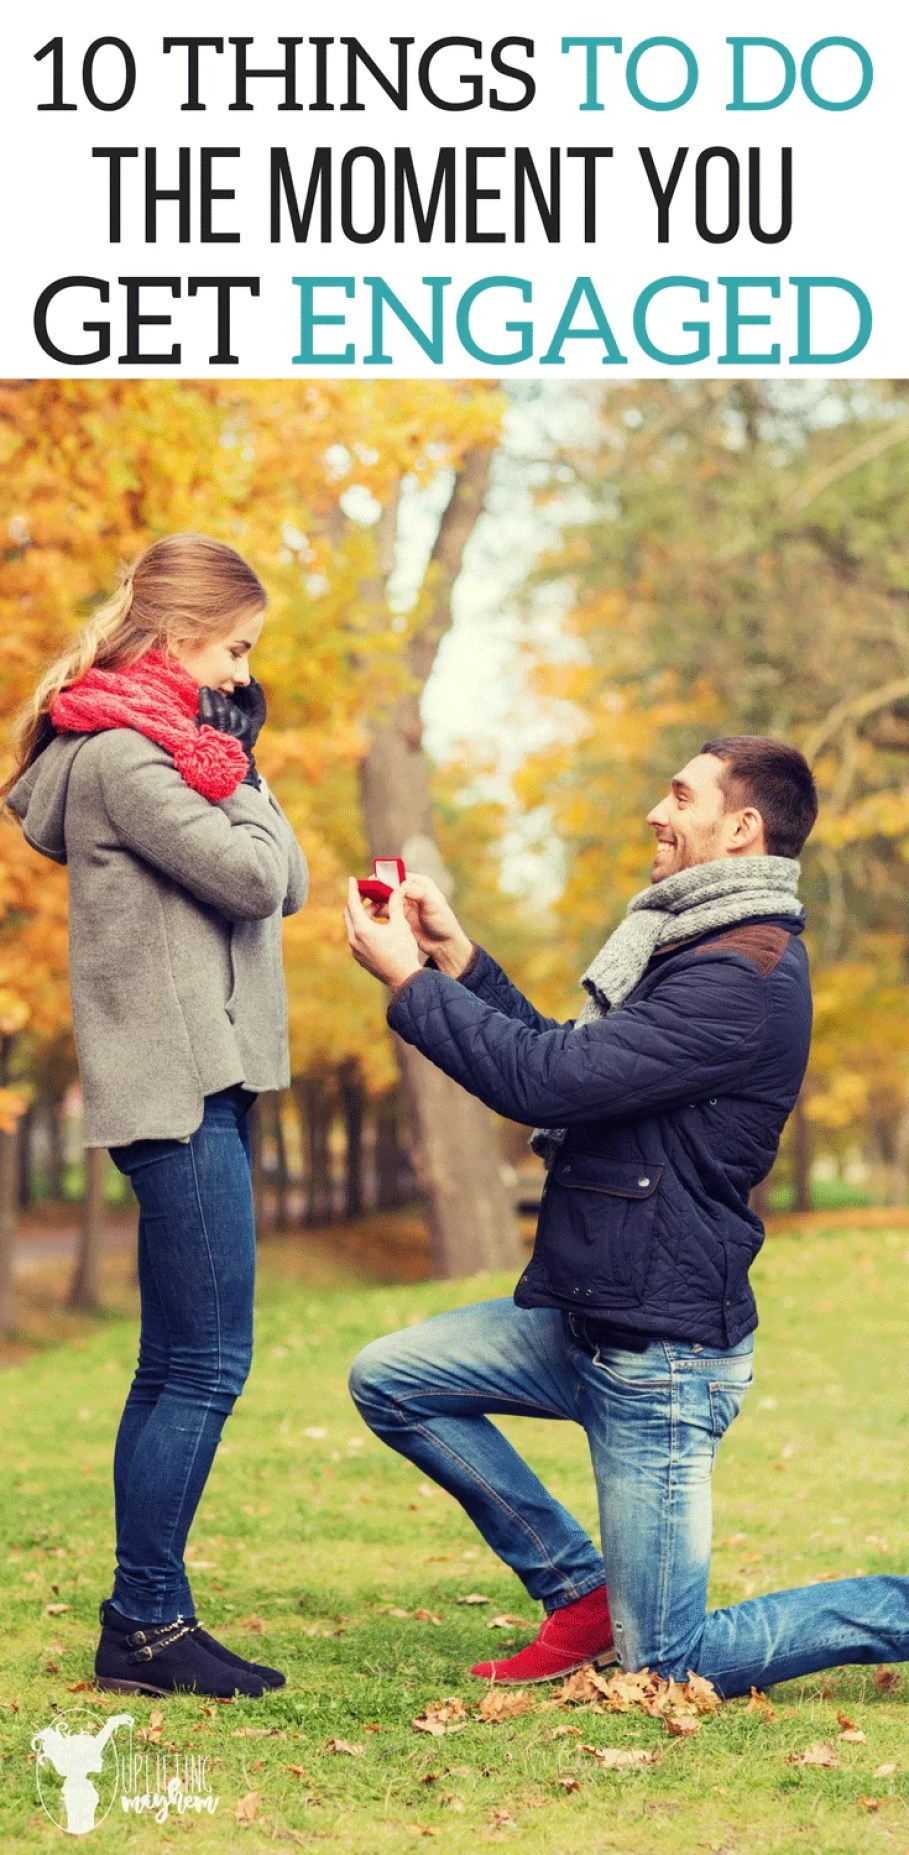 engagement, engaged, getting married, proposal